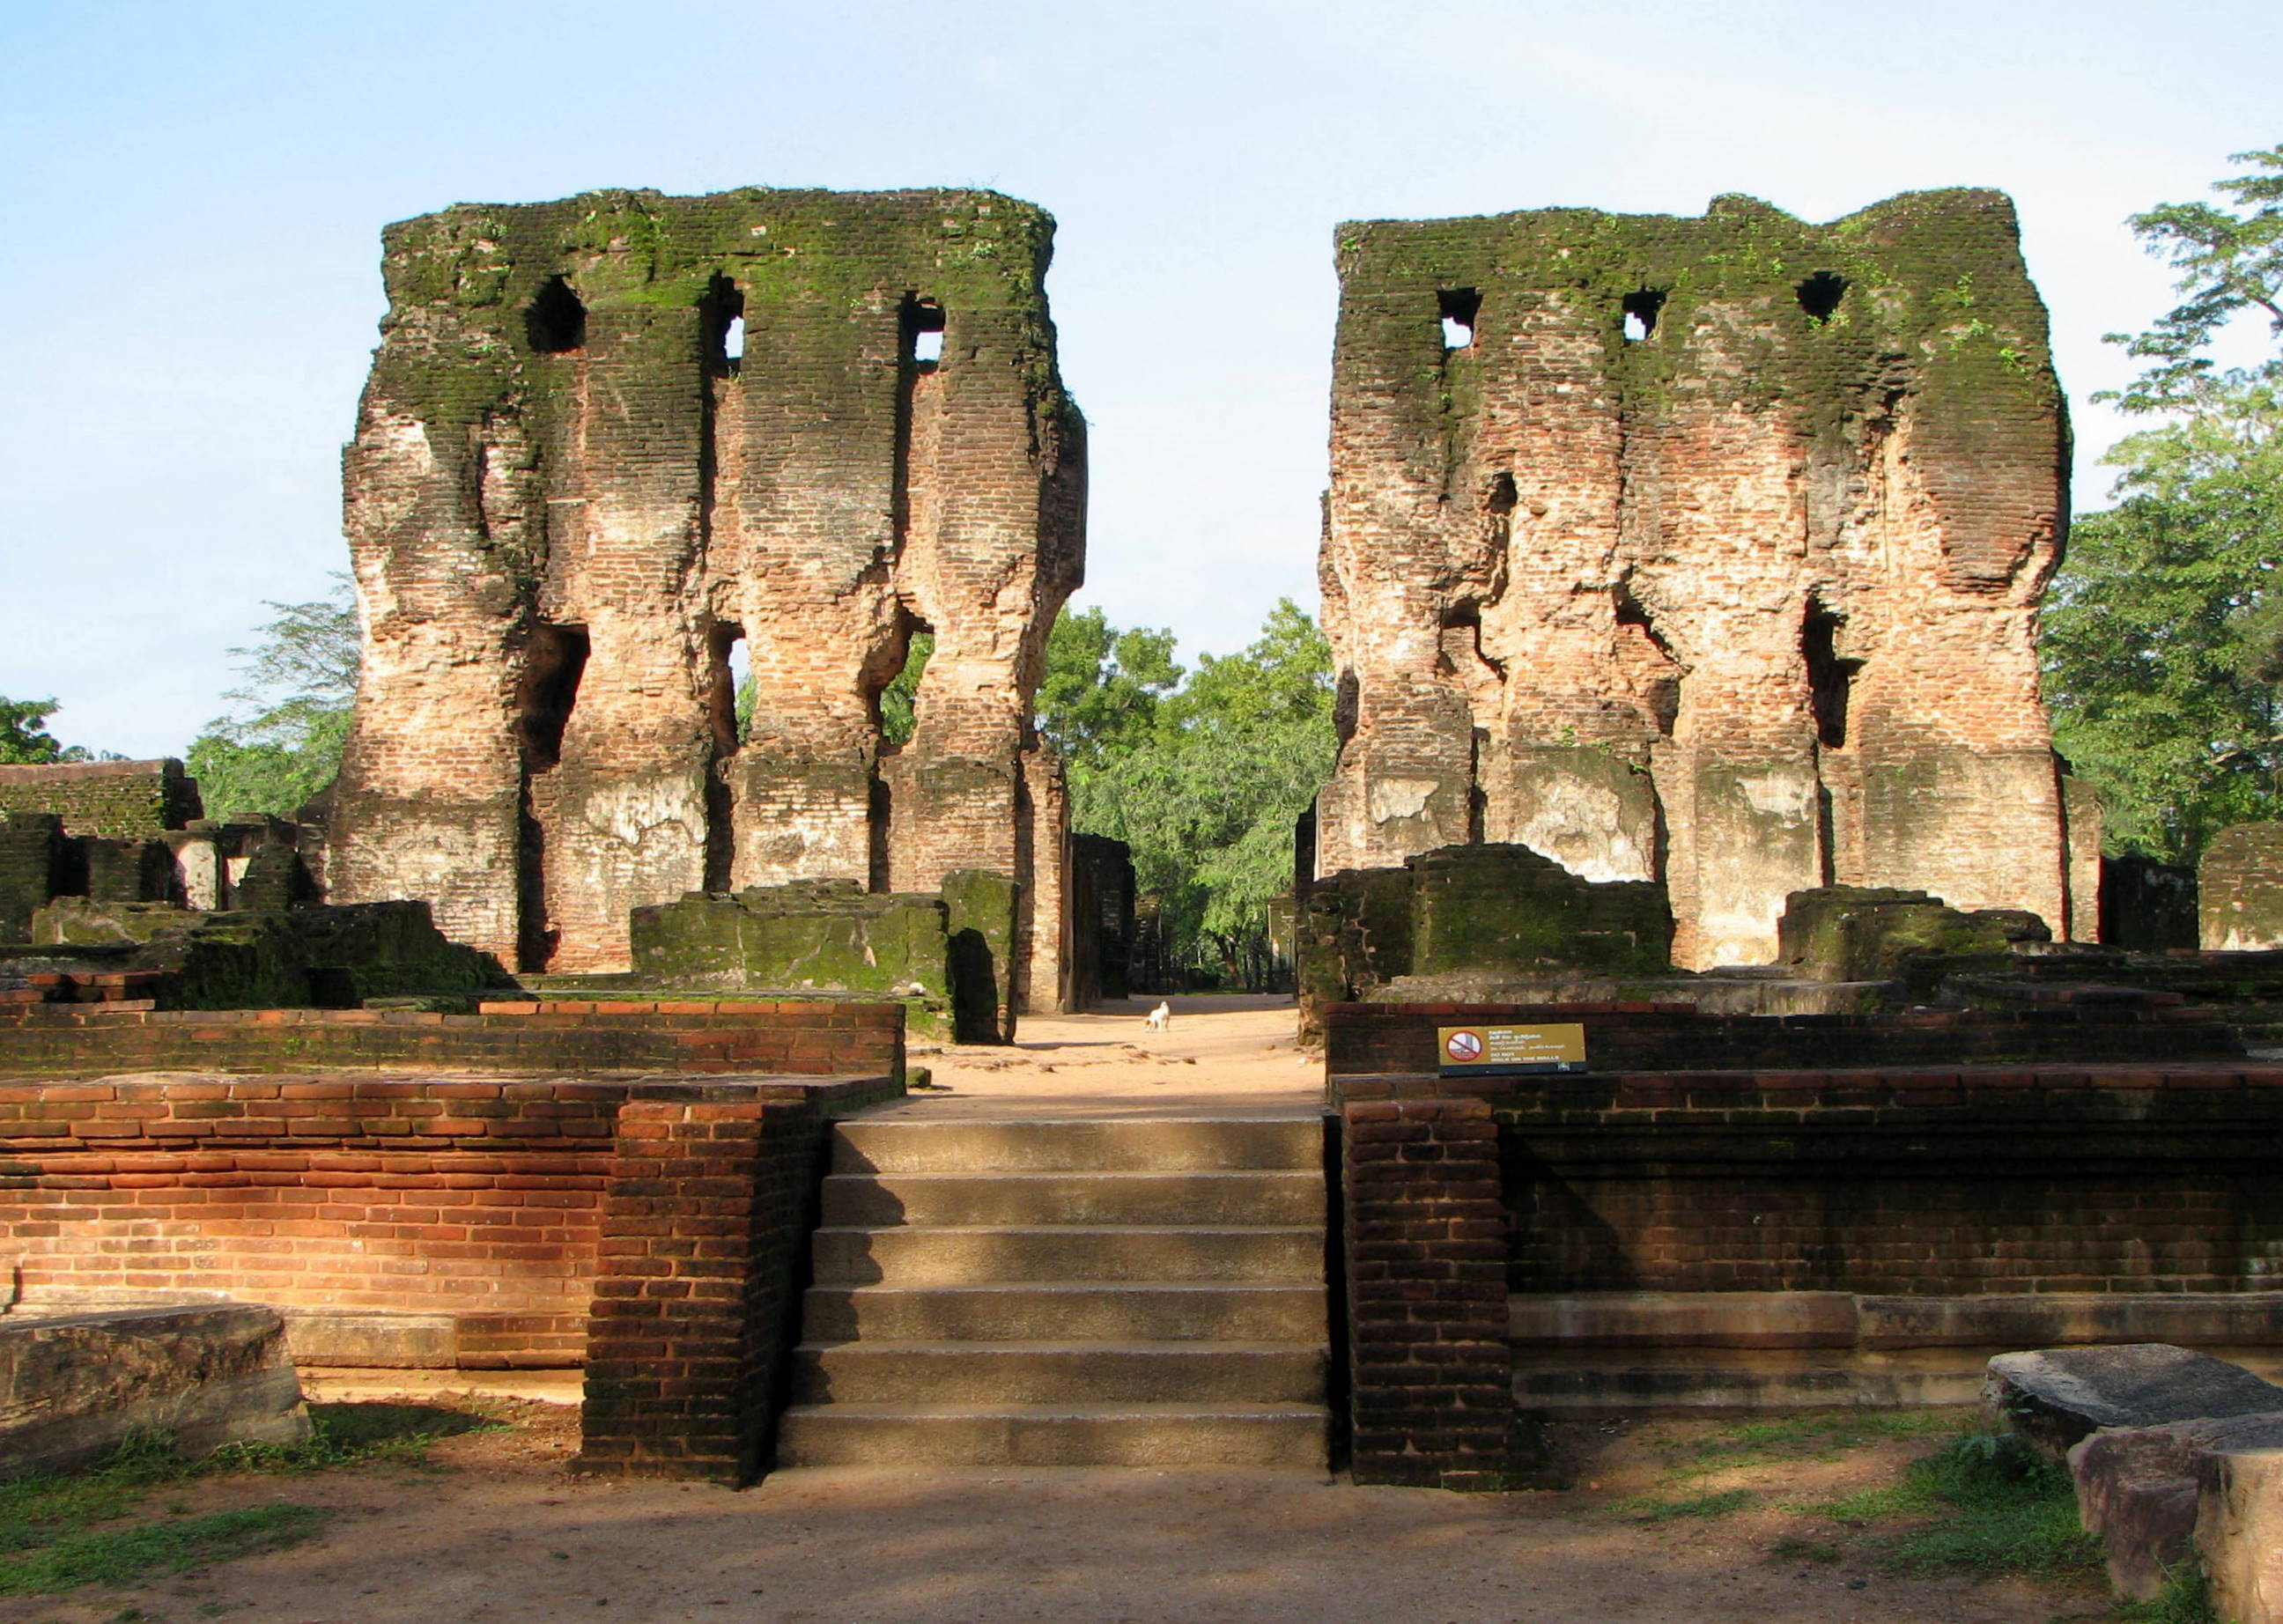 http://upload.wikimedia.org/wikipedia/commons/0/0a/Polonnaruwa_02.jpg